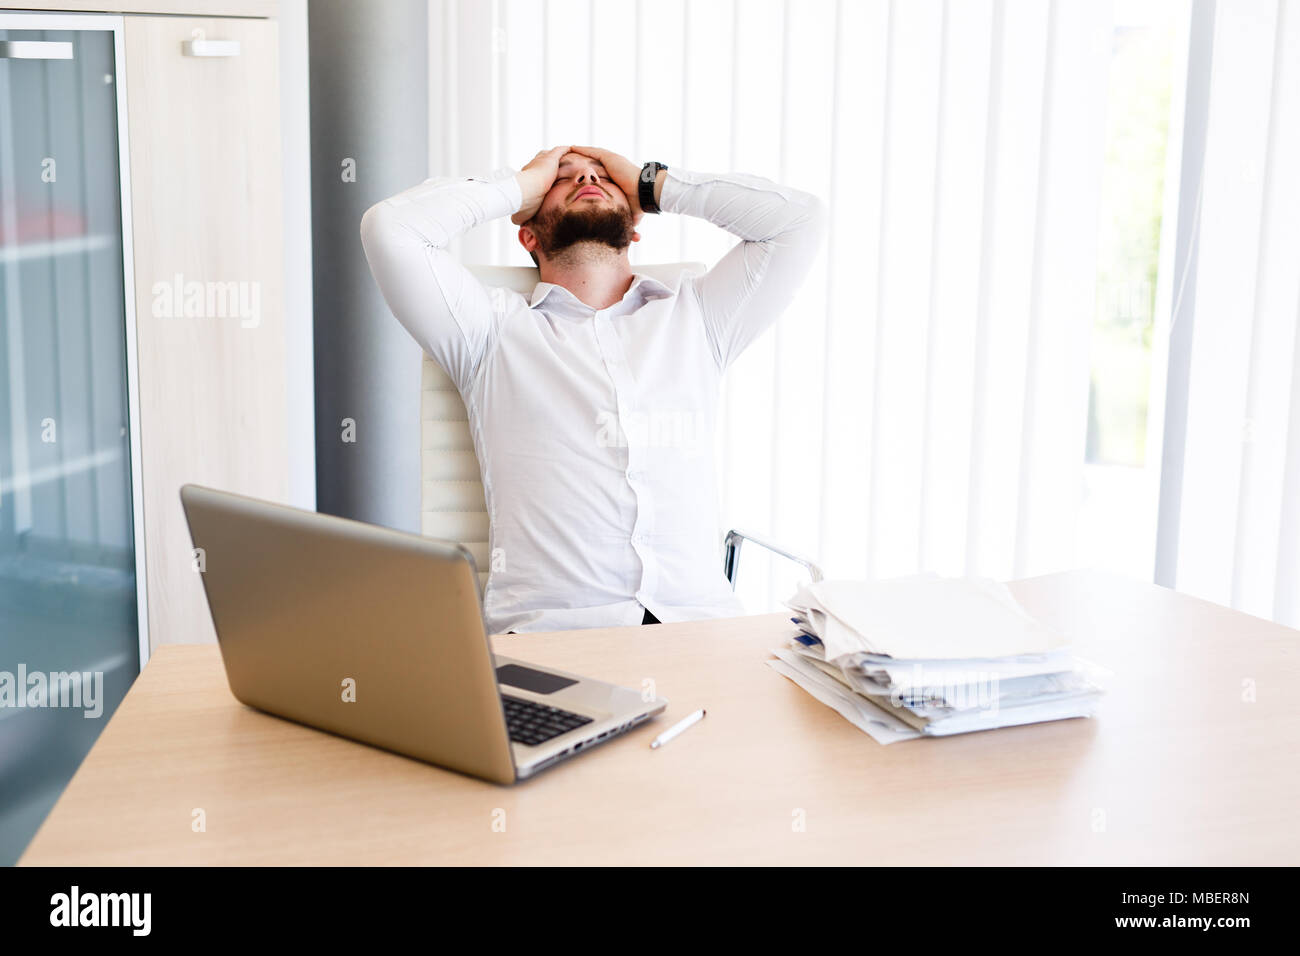 Young Businessman Has Very Stressful Day At Work - Stock Image